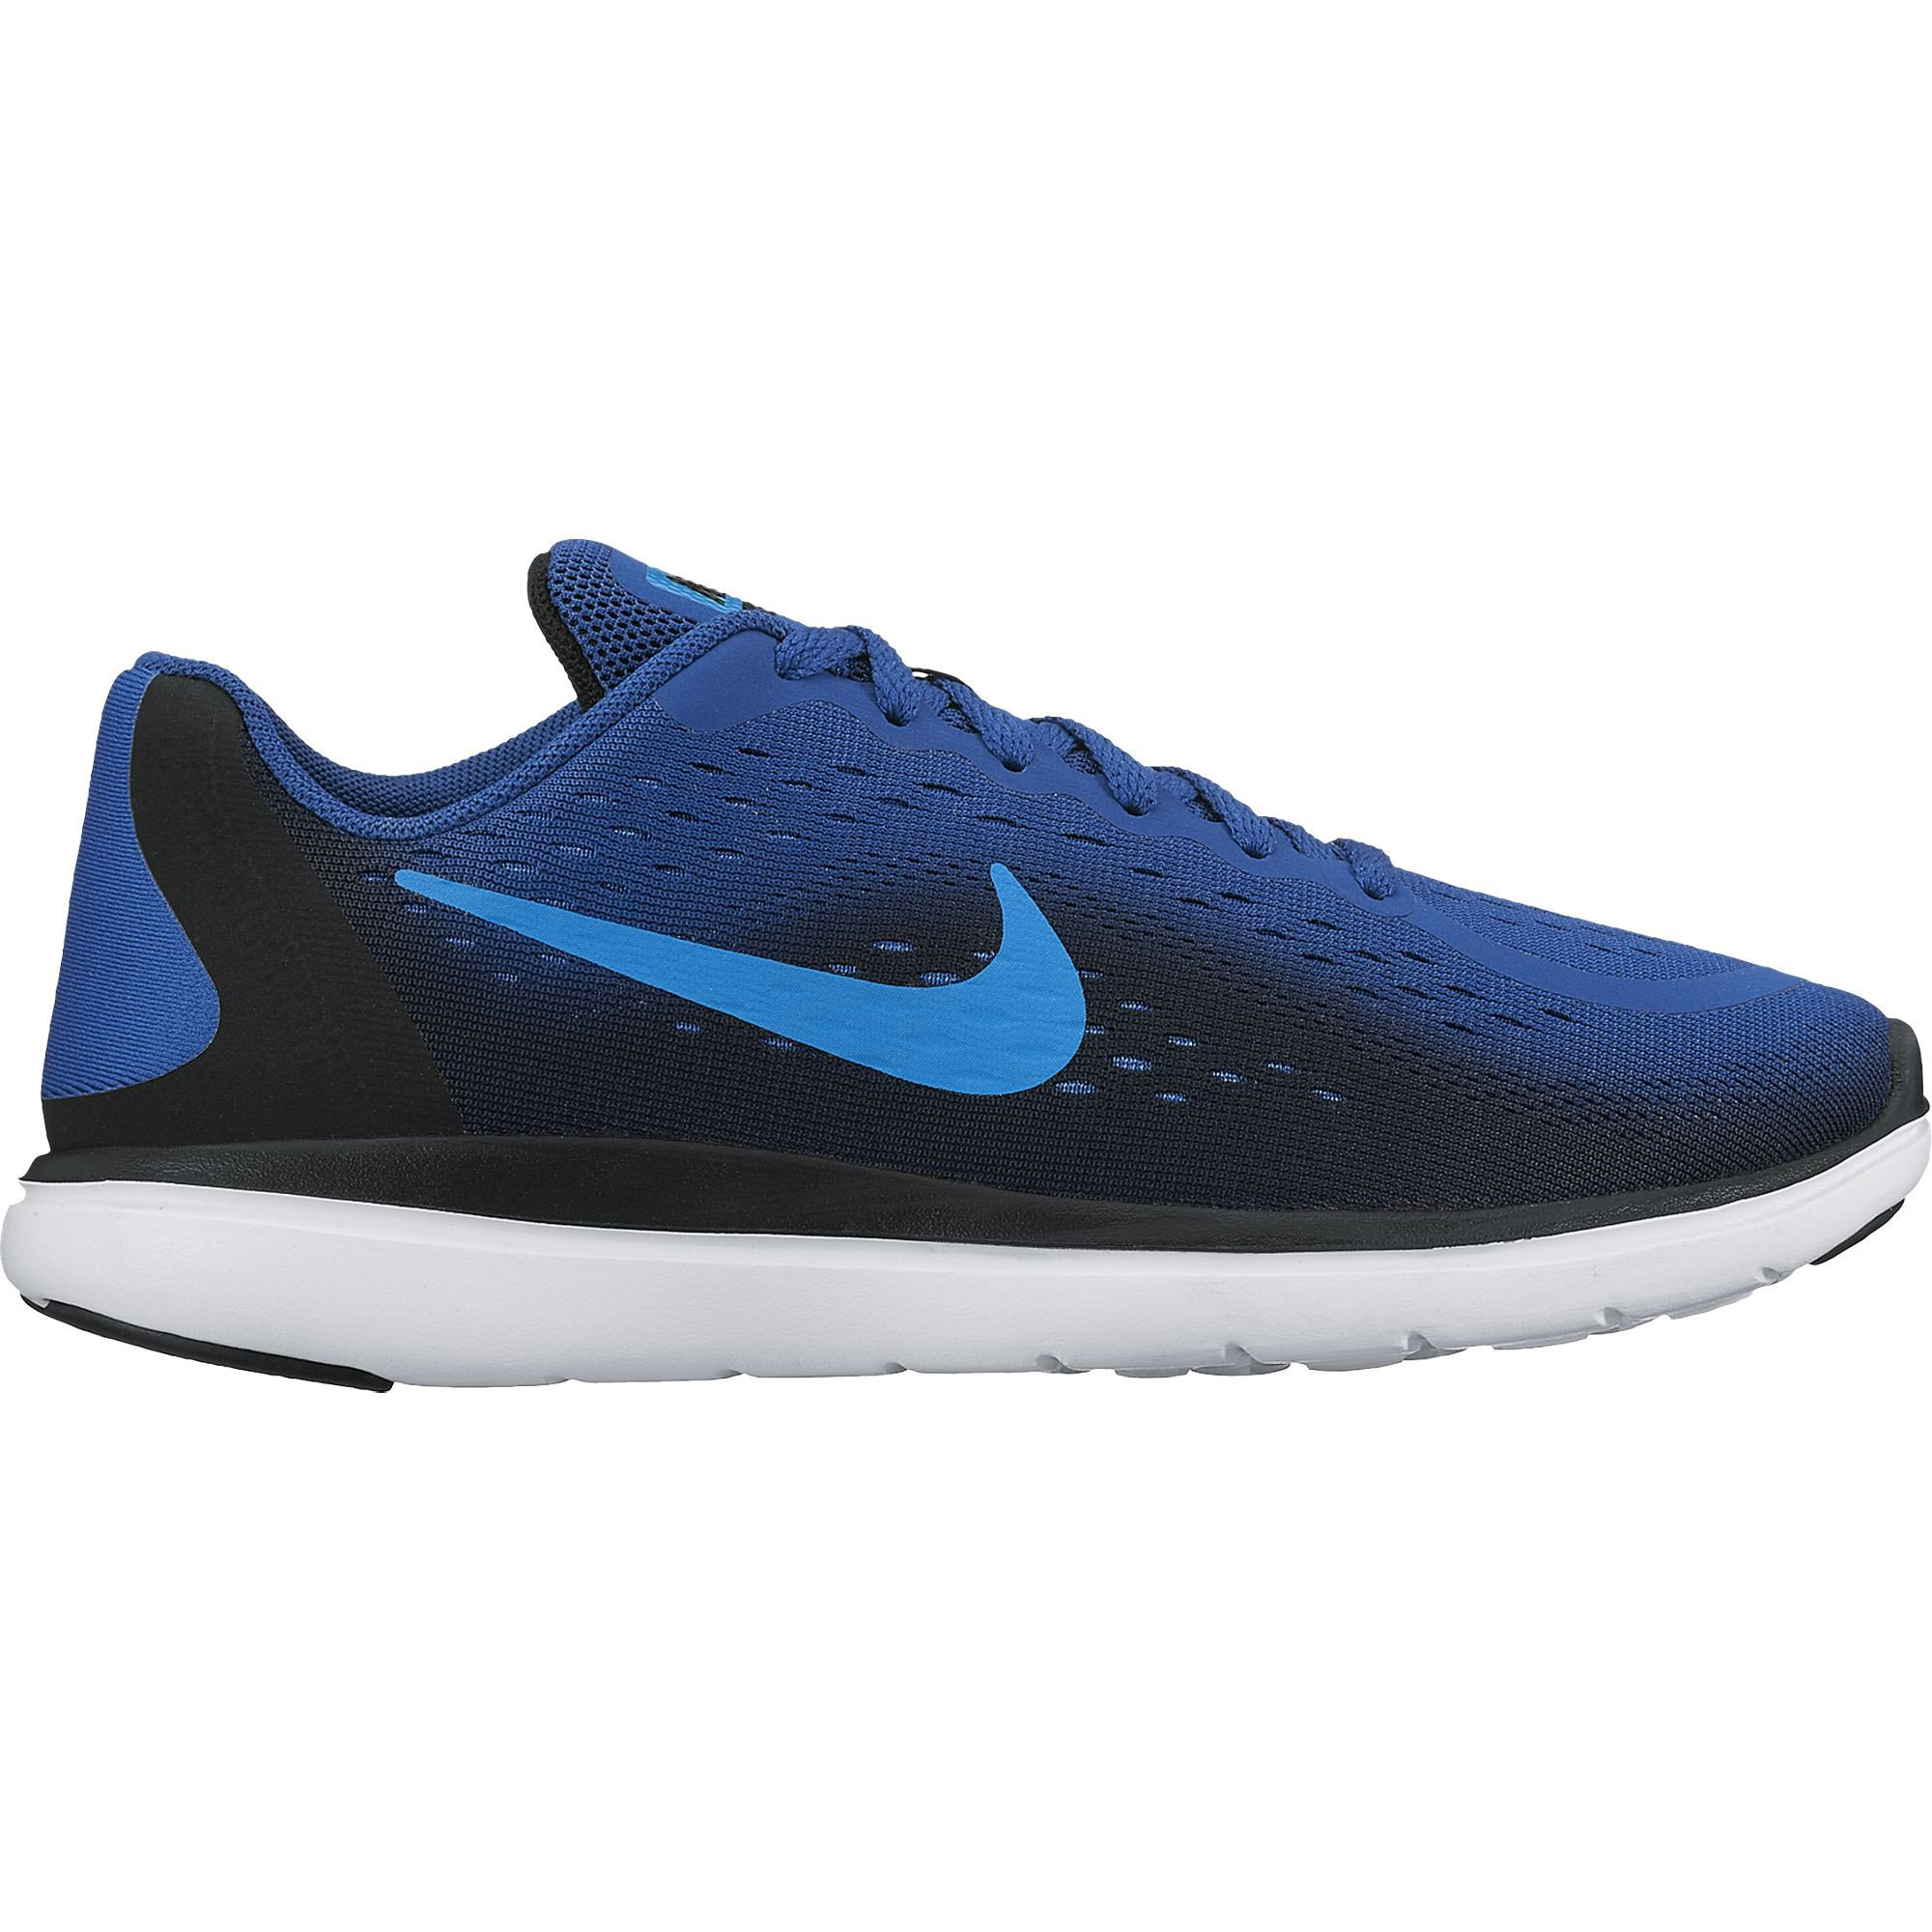 NIKE Boys Flex RN 2017 (GS) Running Shoe Gym Blue/Blue Orbit/Black/White Size 5.5 M US